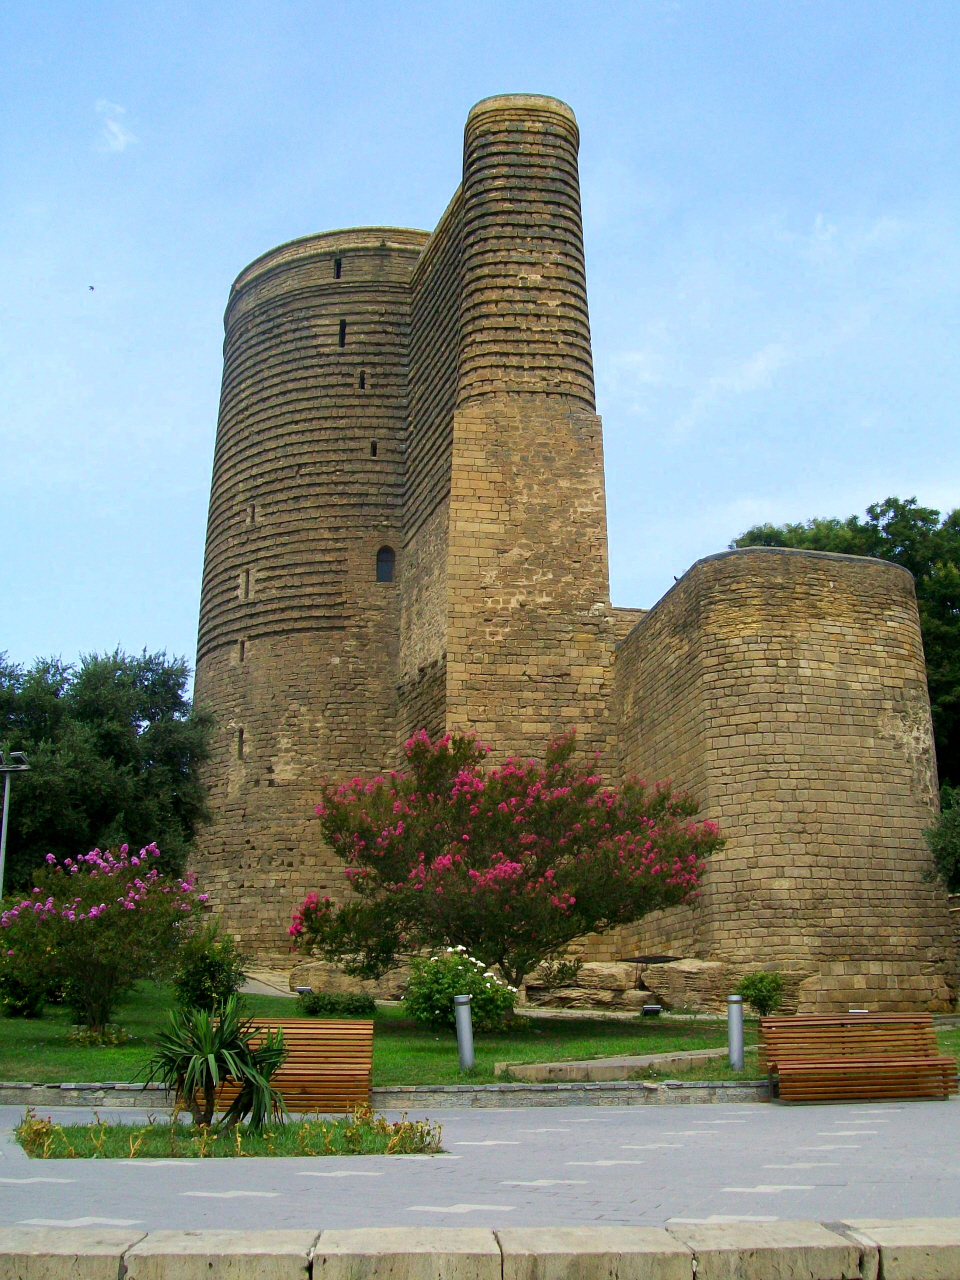 Mystery - Maidens Tower (Belived 12th Cen.) Unknown Purpose - Some Believe Zoroastrian Tower - Bacu, Azerbaijan